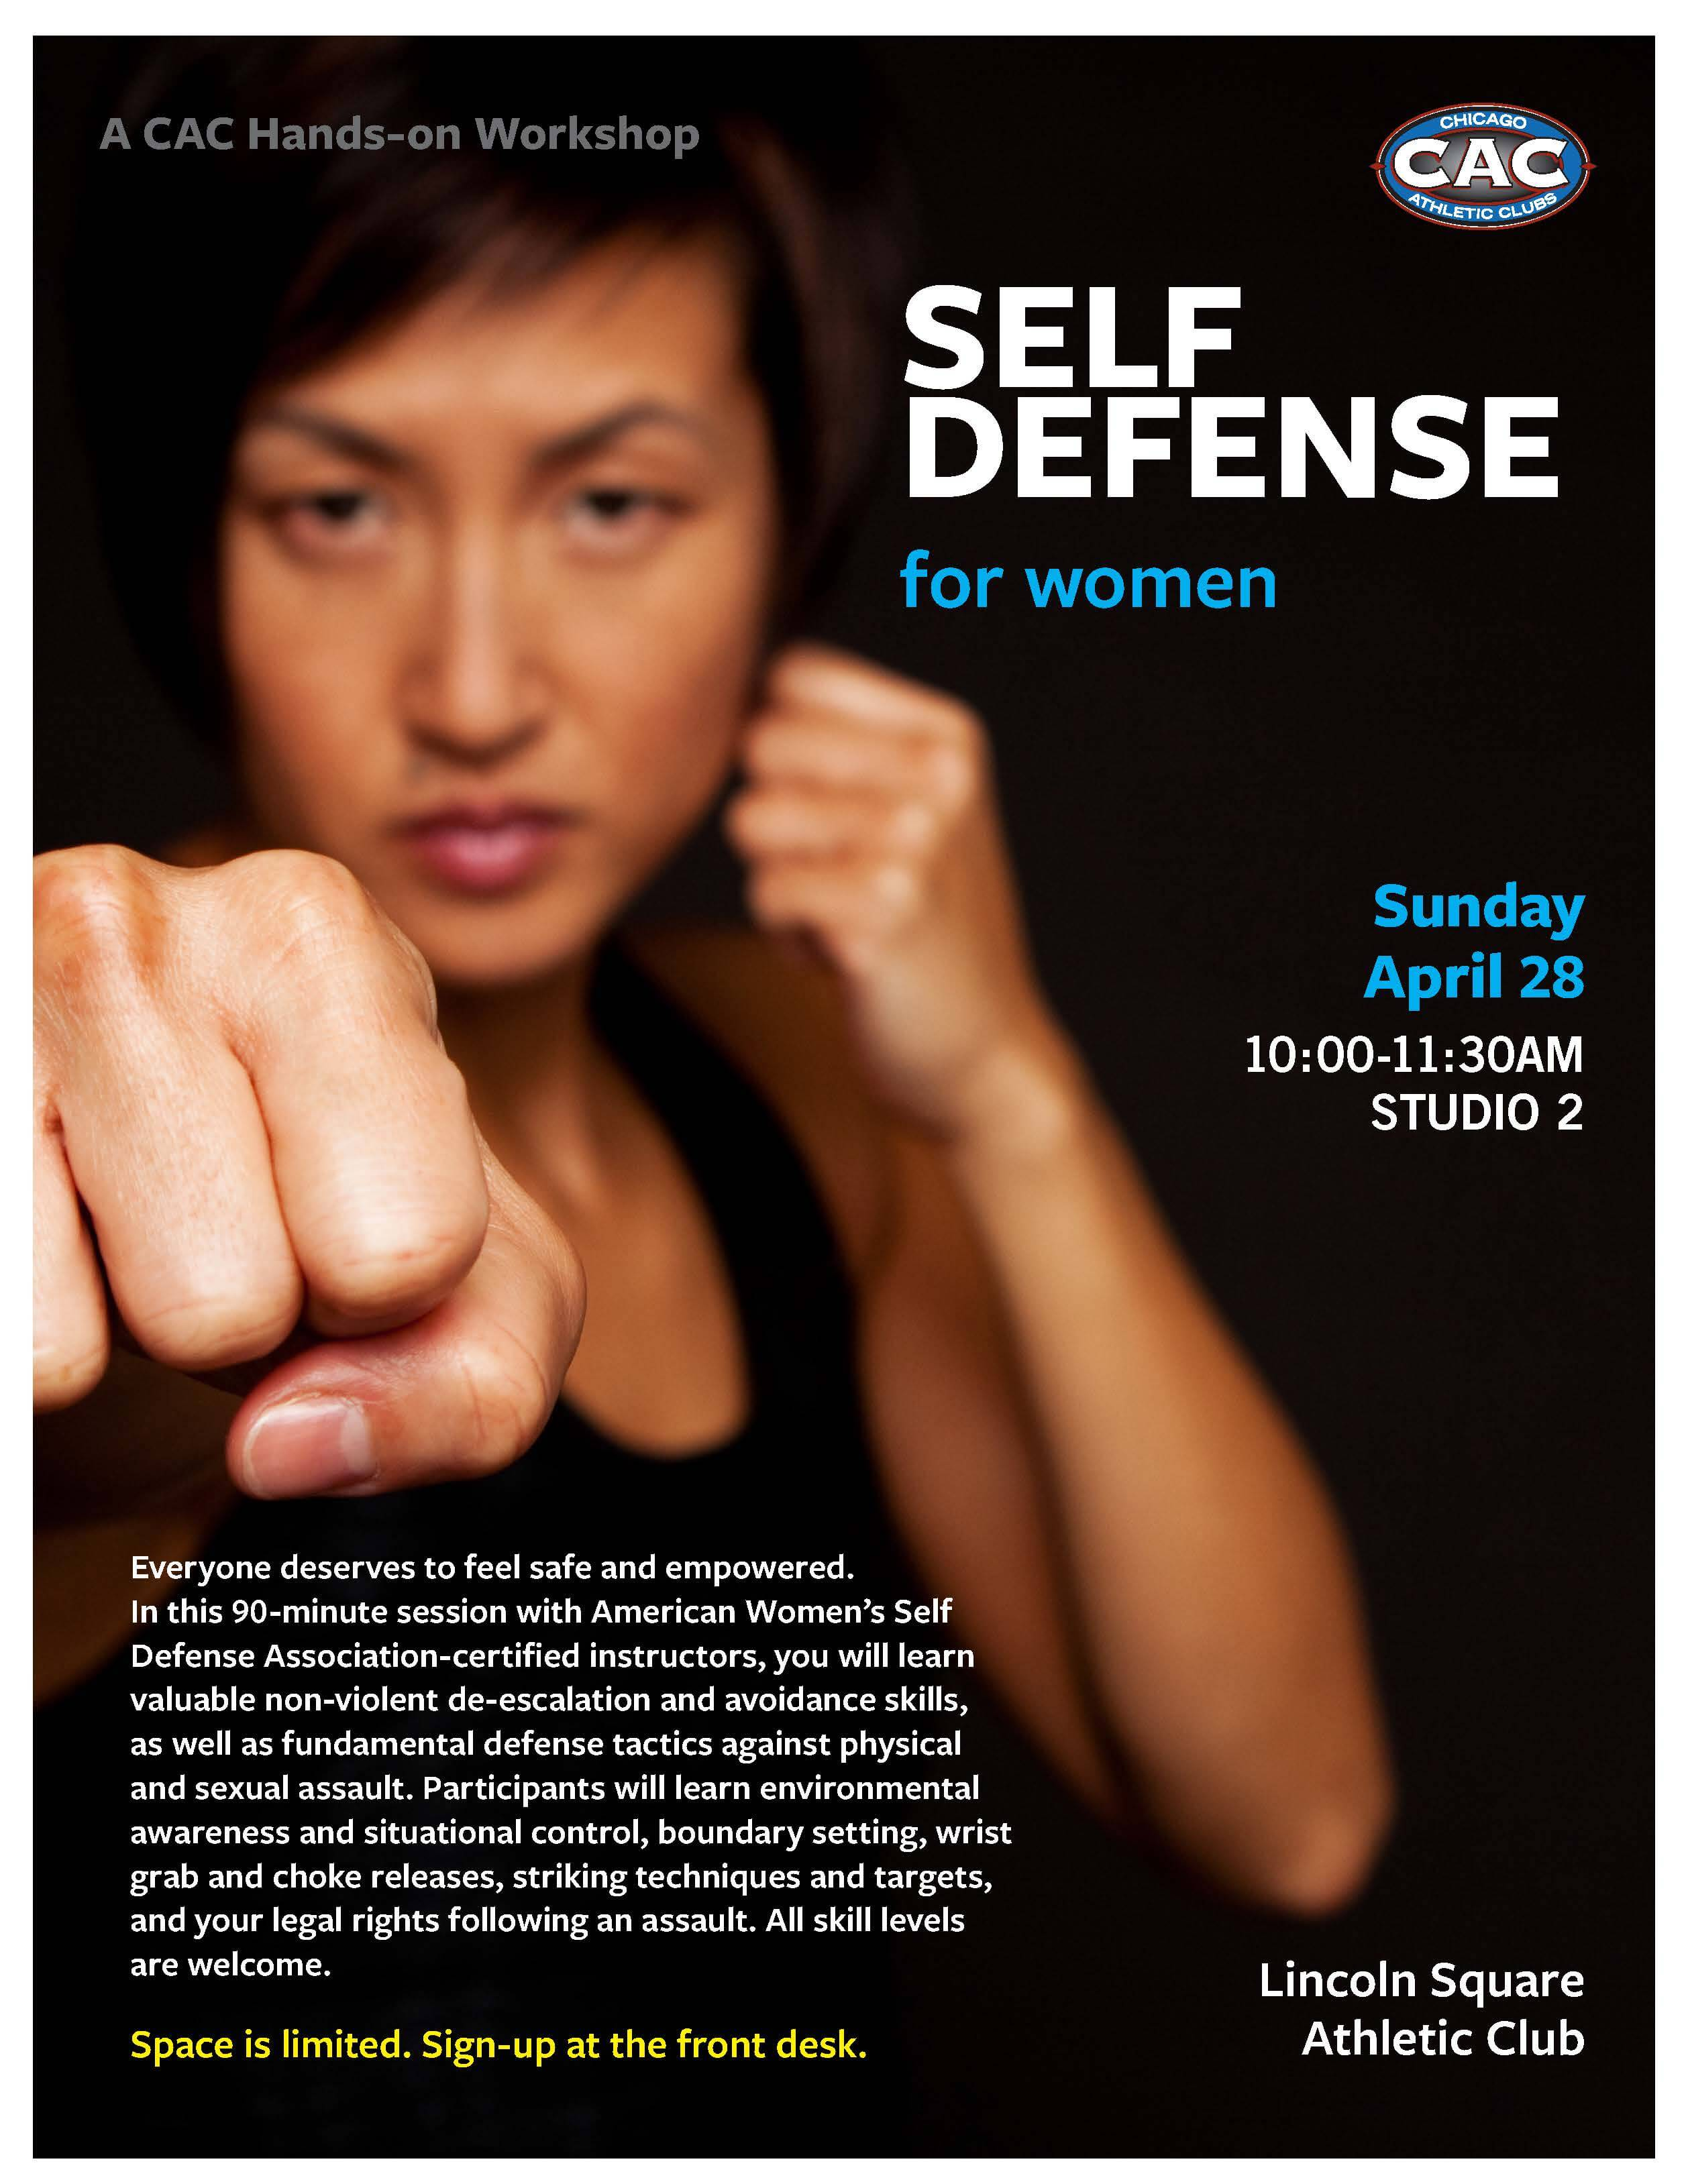 0419_Self Defense Workshop flyer